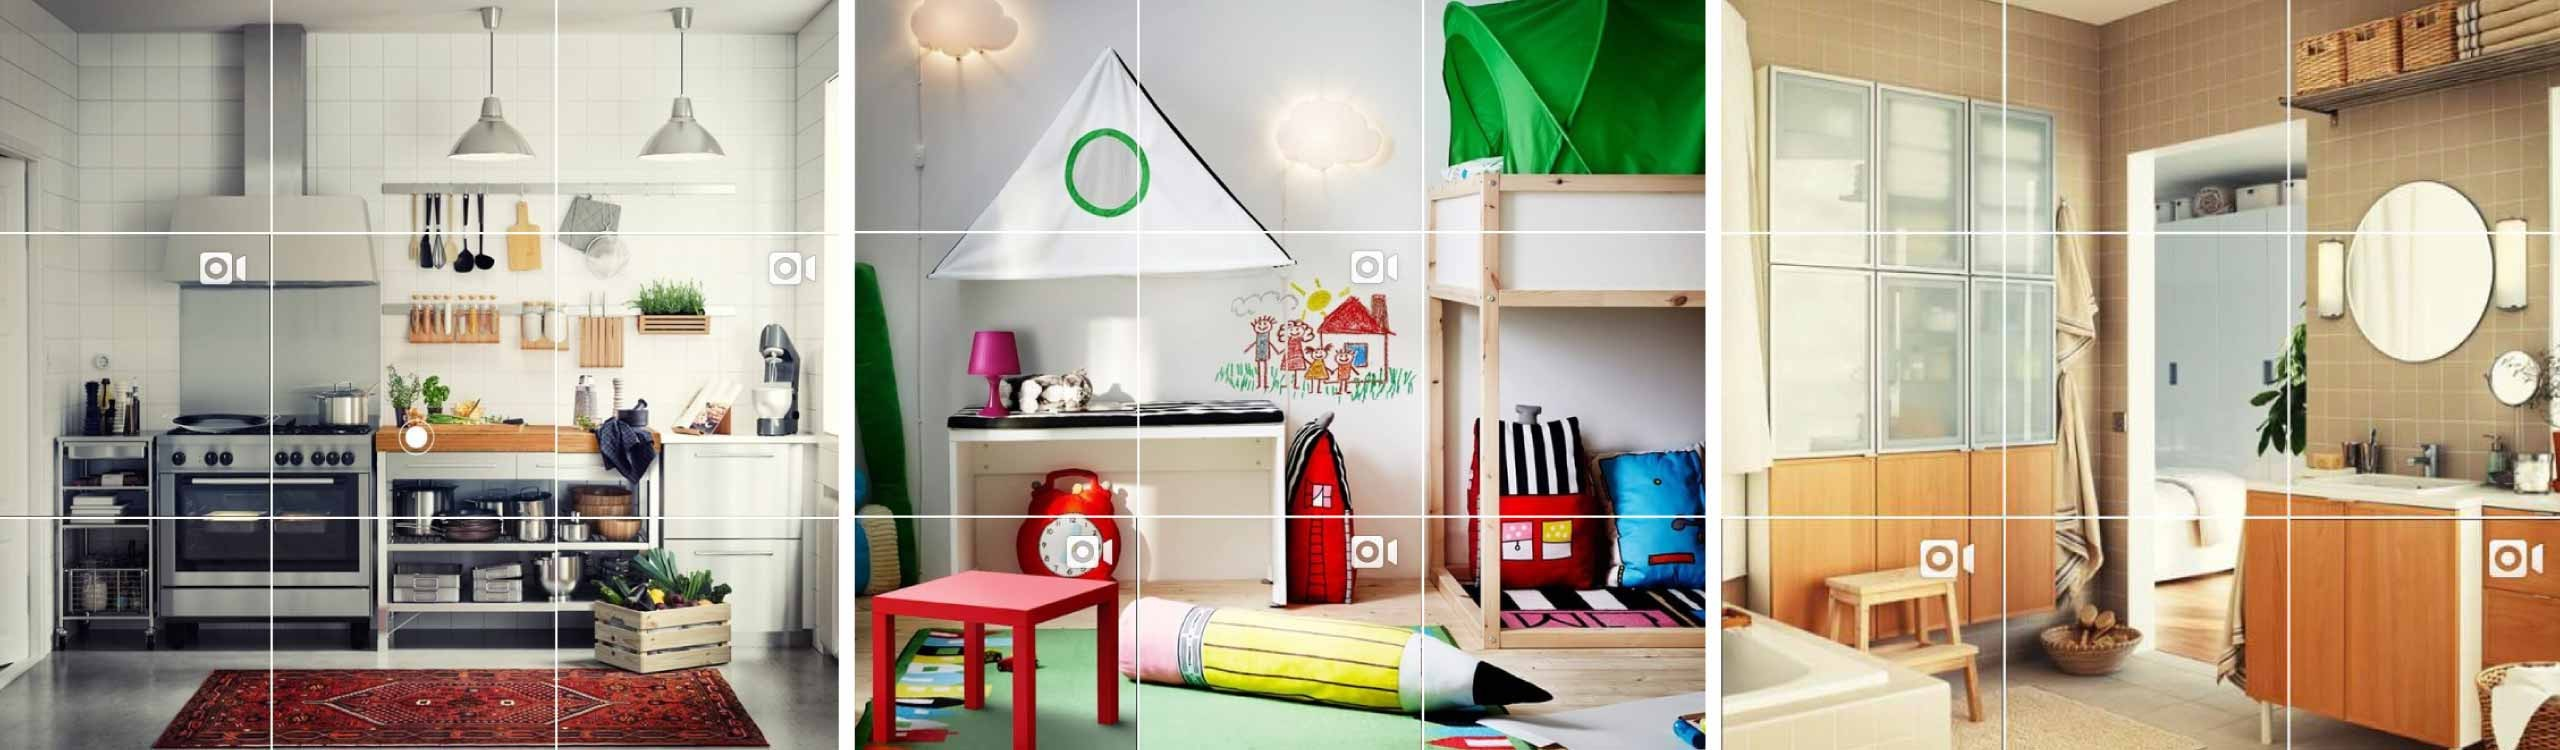 Piso 40 metros ikea excellent ikea business te ayudamos a for Muebles piso completo ikea